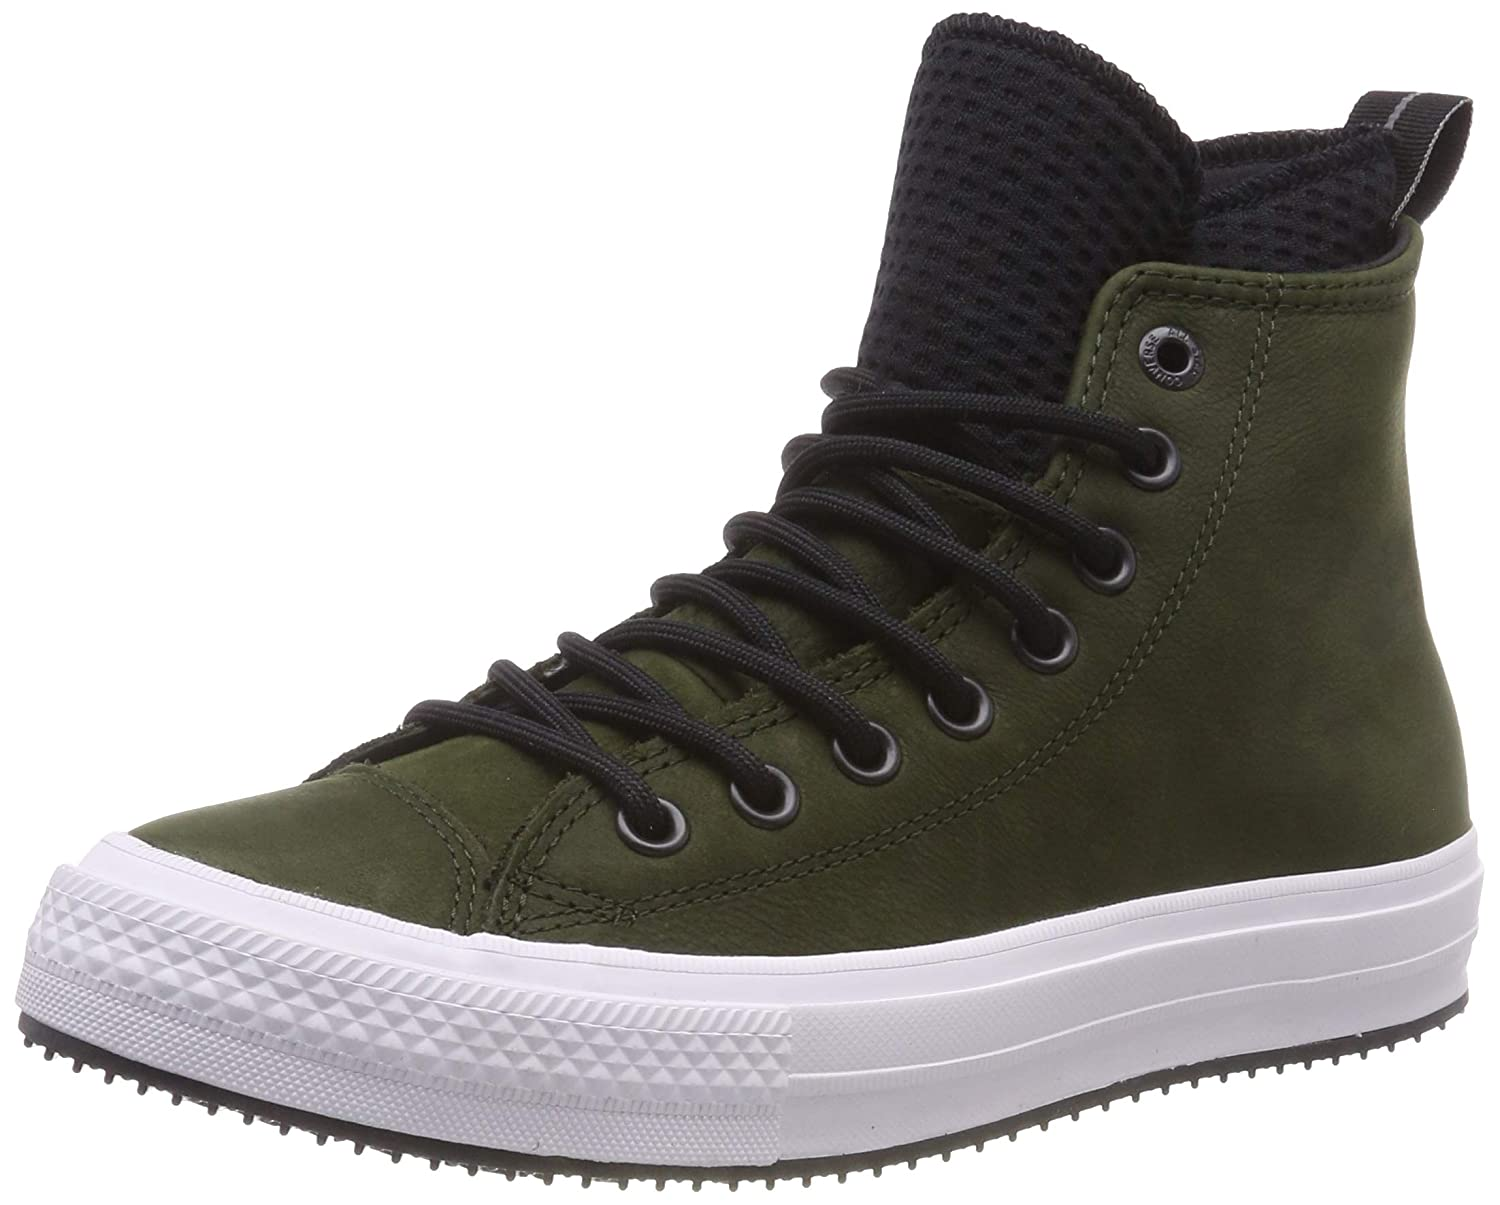 TALLA 37 EU. Converse Chuck Taylor All Star WP Boot, Zapatillas Altas Unisex Adulto